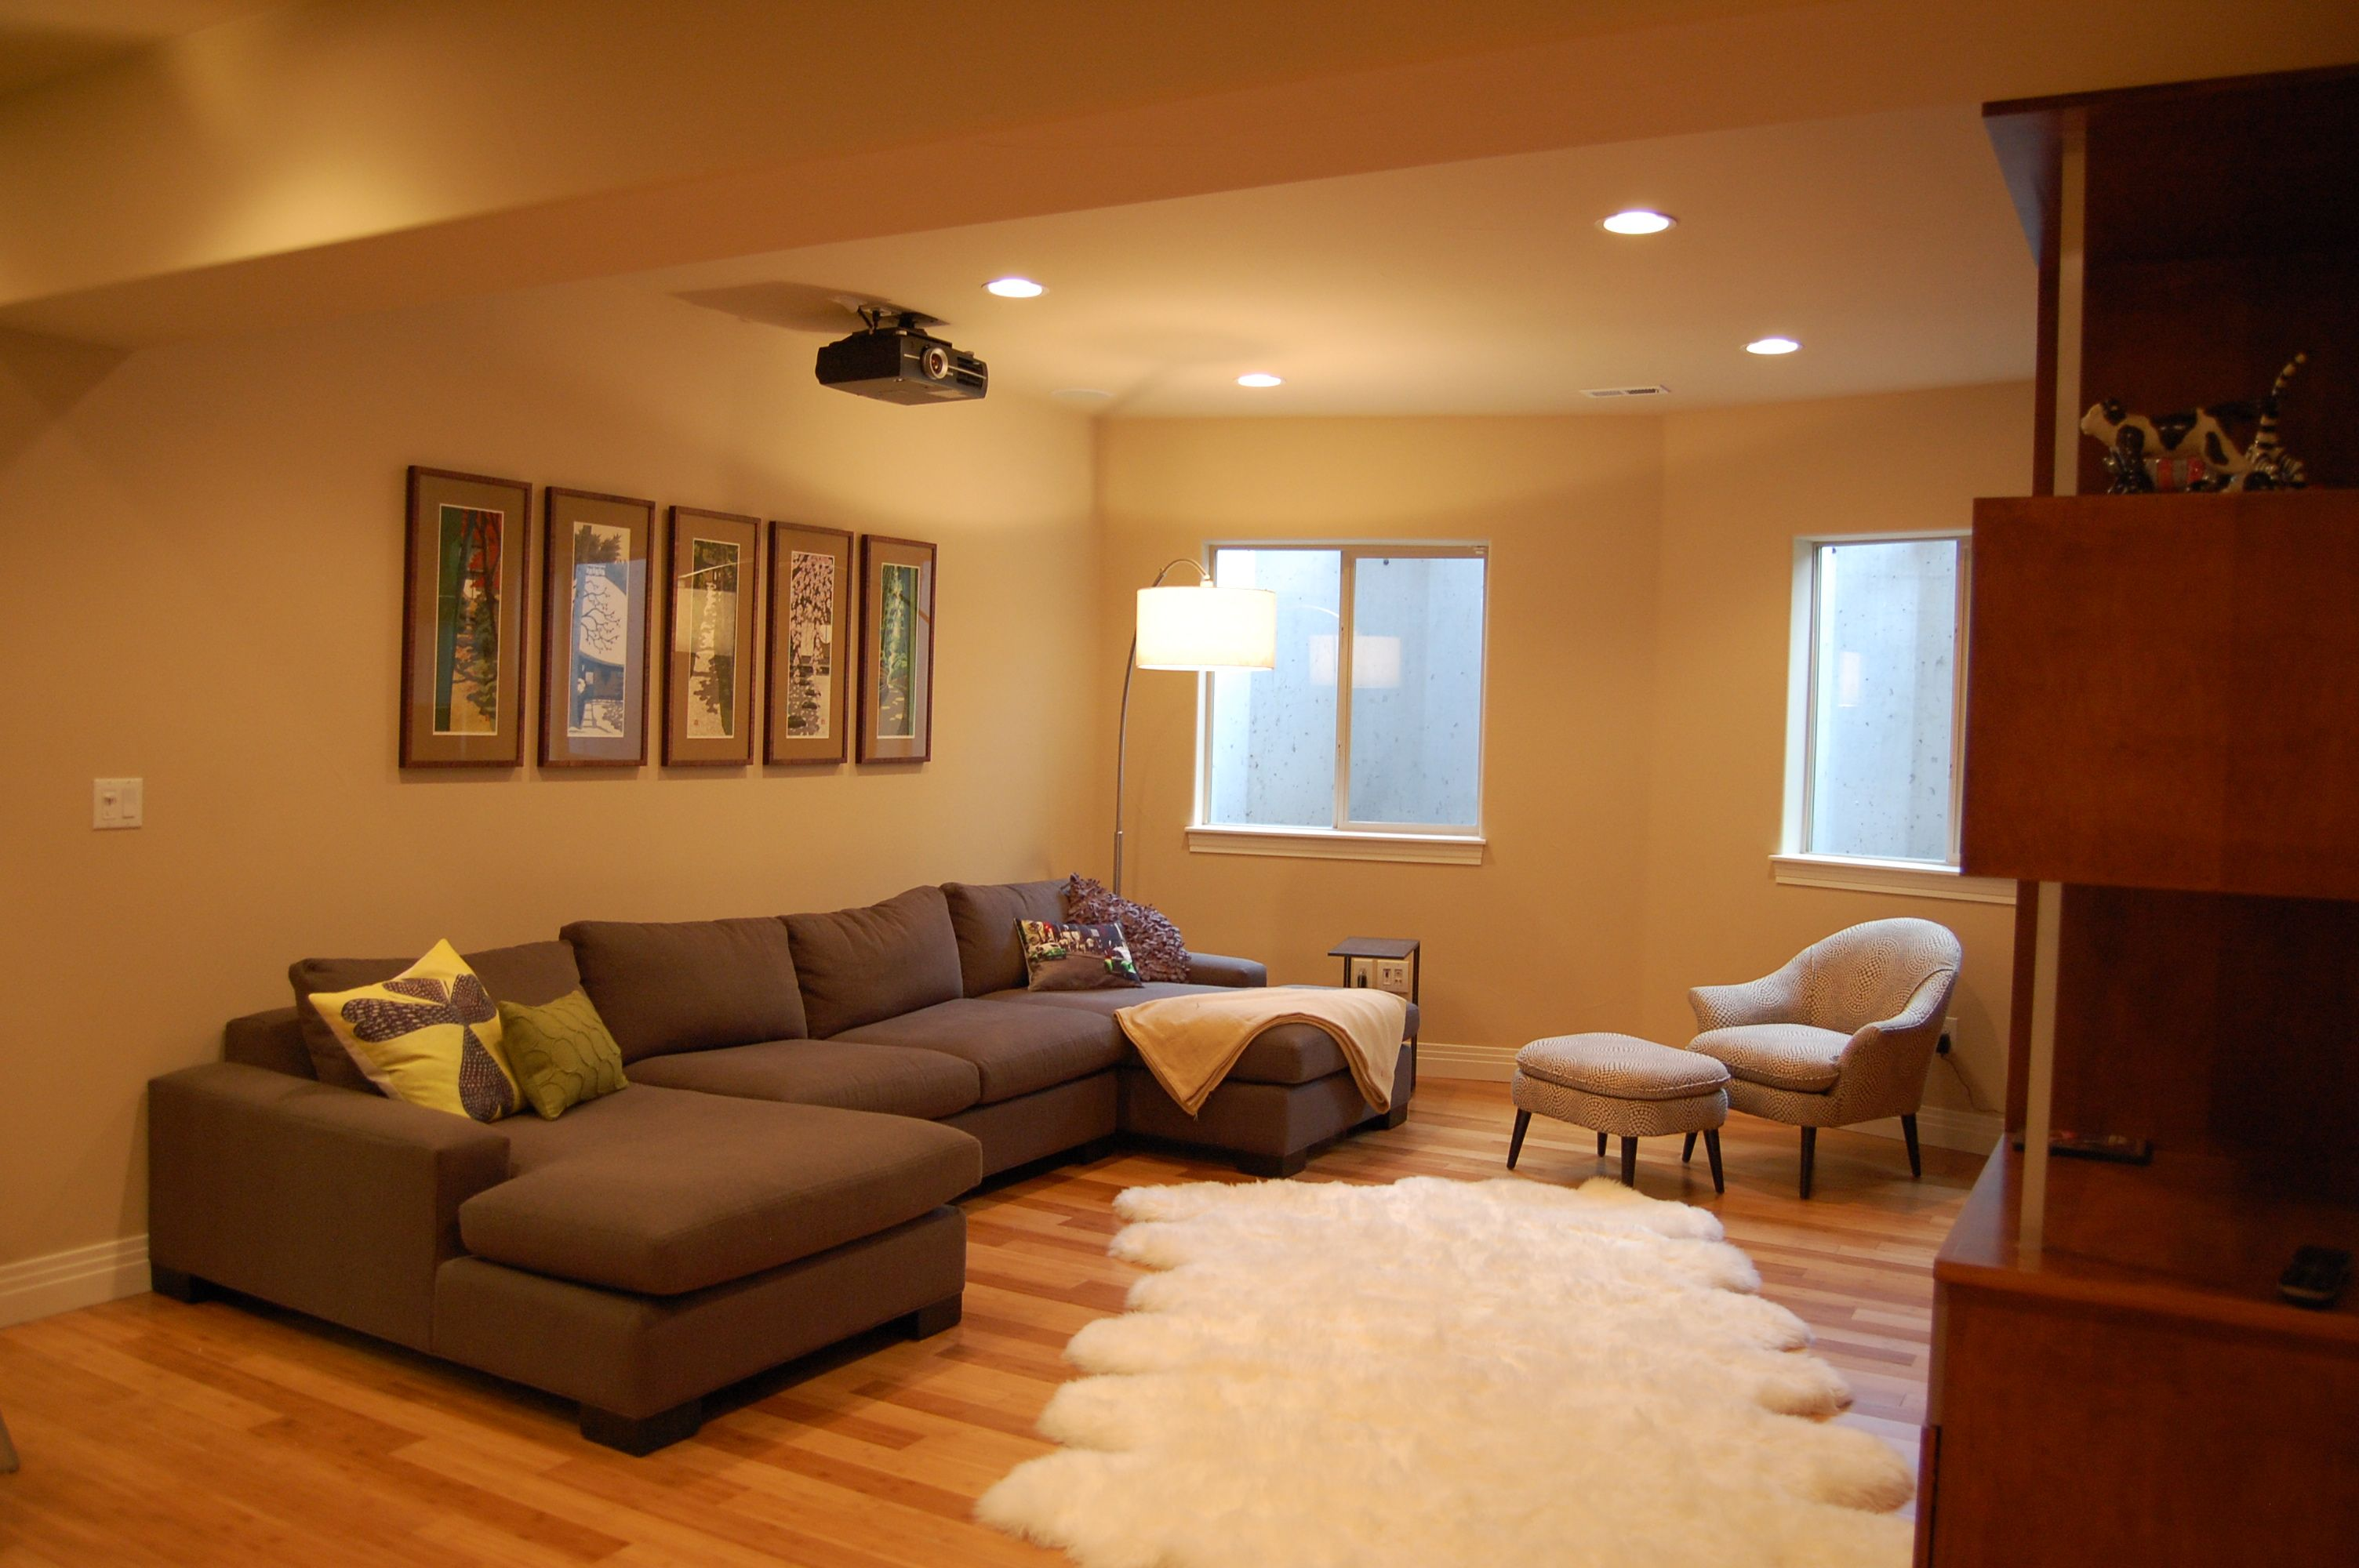 Basement Living Room Designs Interesting 23 Most Popular Small Basement Ideas Decor And Remodel  Man Design Inspiration